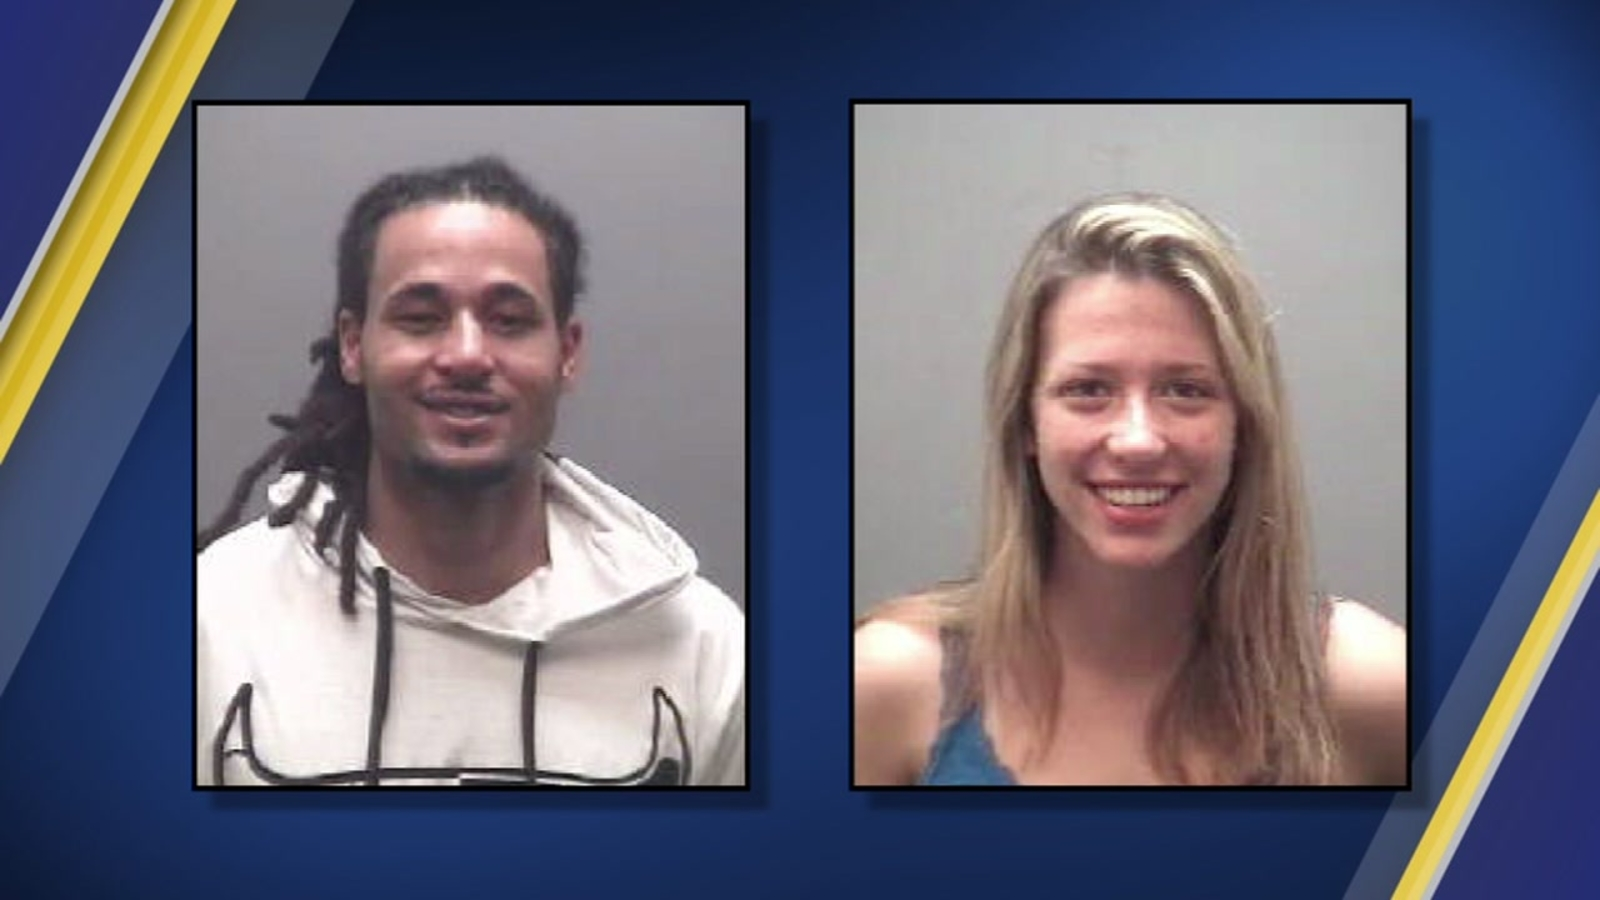 Alamance County Sheriff's Office is searching for two people wanted on  kidnapping charges